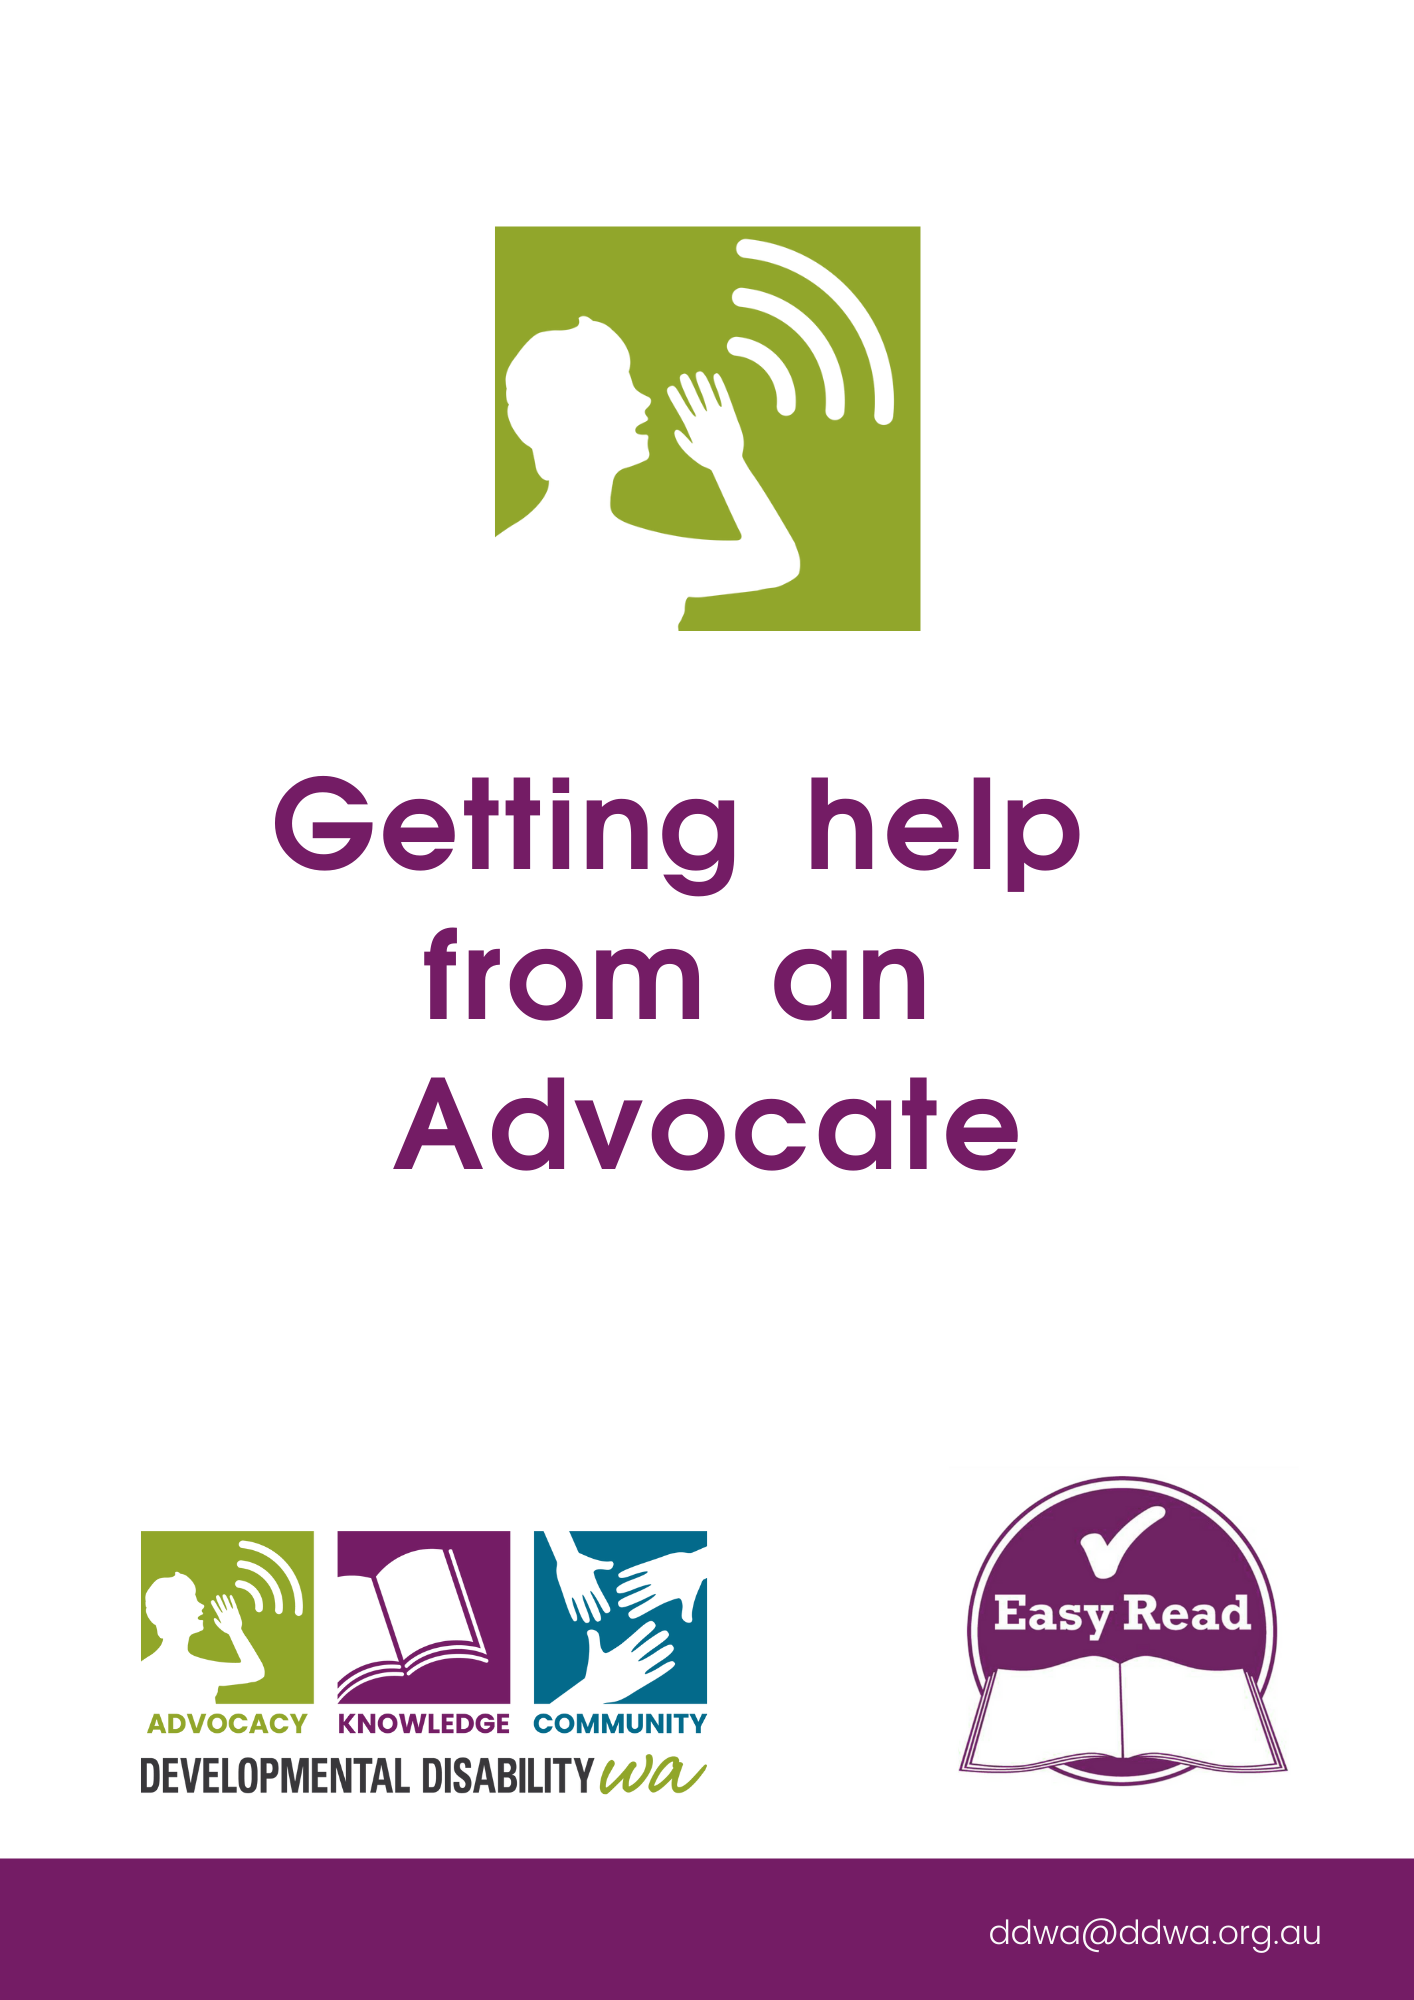 front cover image of the Getting help from an advocate easy read resource